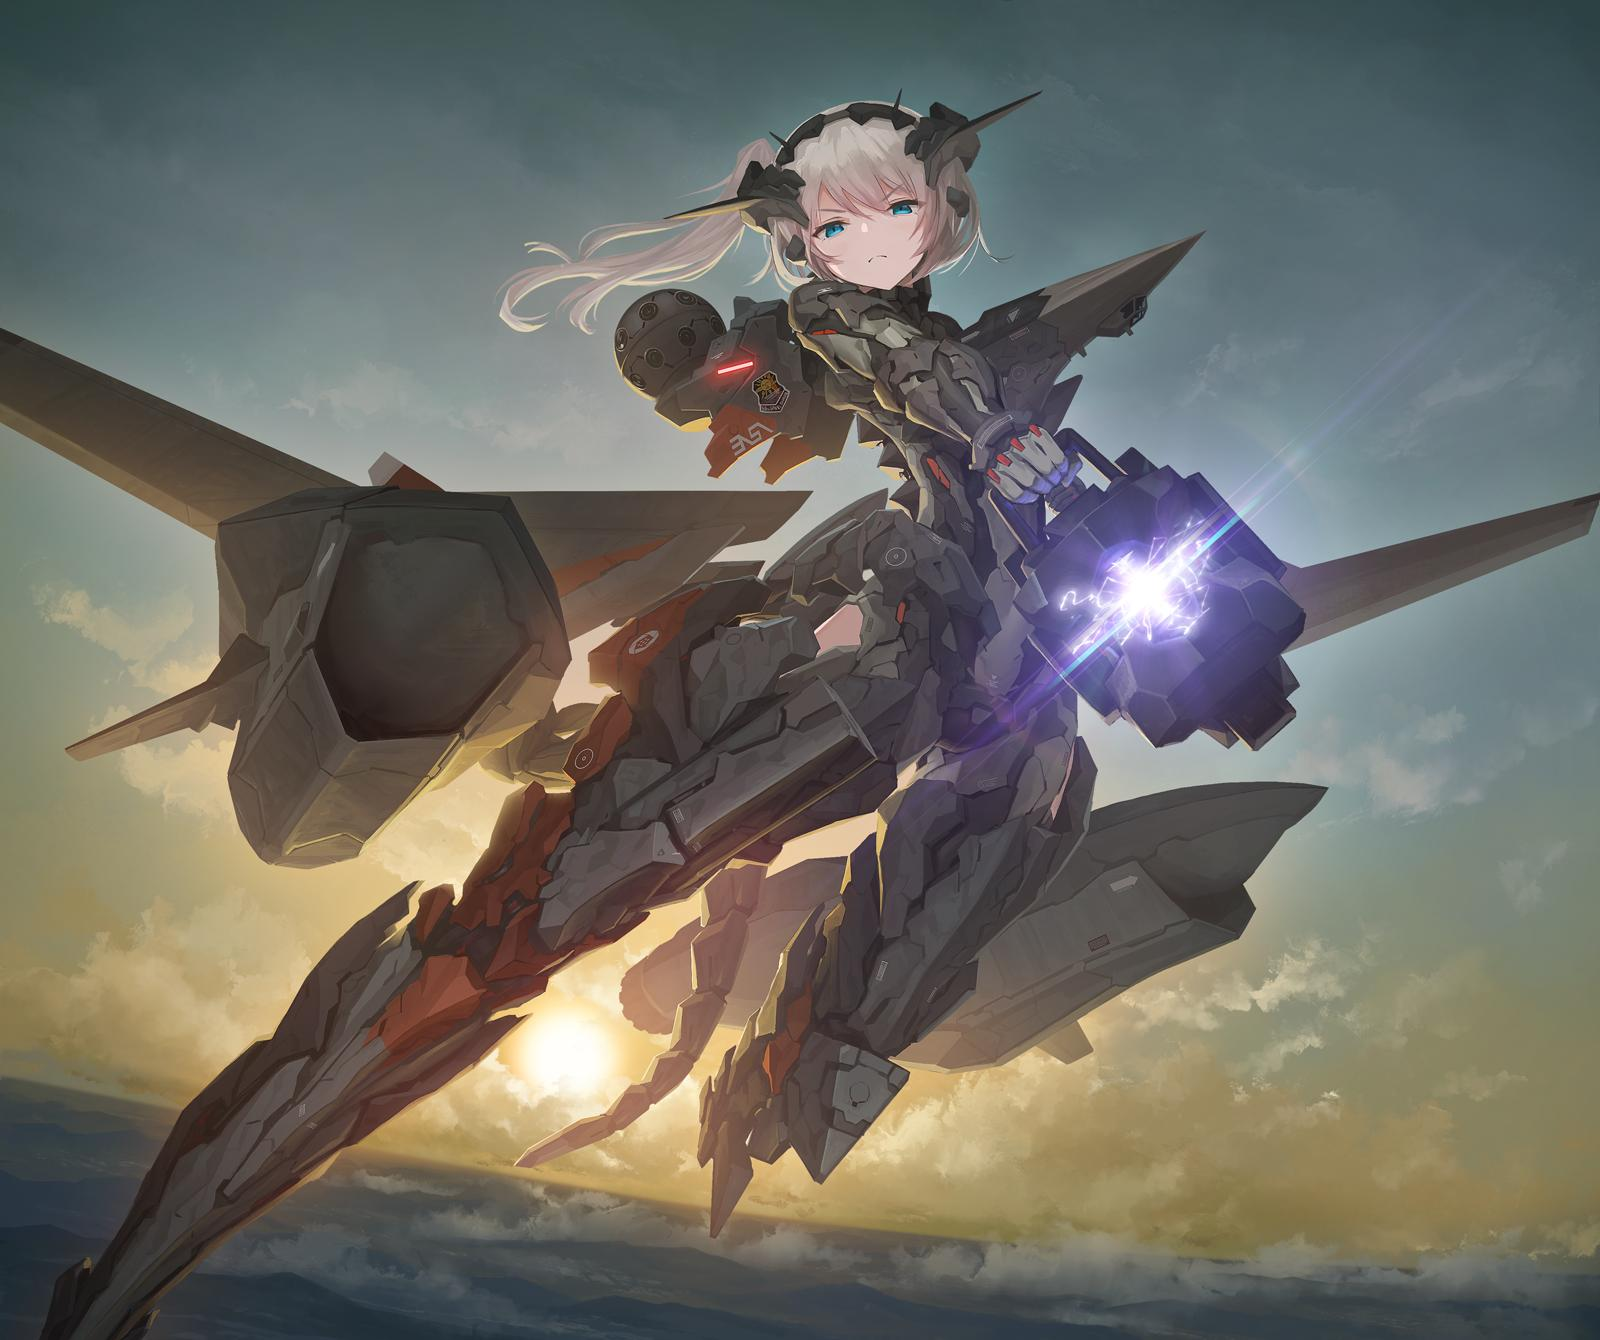 >:( 1girl ace_combat ace_combat_7 blue_eyes clouds commentary_request firing floating headwear highres holding holding_weapon looking_at_viewer mecha_musume mechanical_arm mechanical_tail personification railgun scenery side_ponytail solo sunset tail tom-neko_(zamudo_akiyuki) weapon white_hair x-02s_strike_wyvern